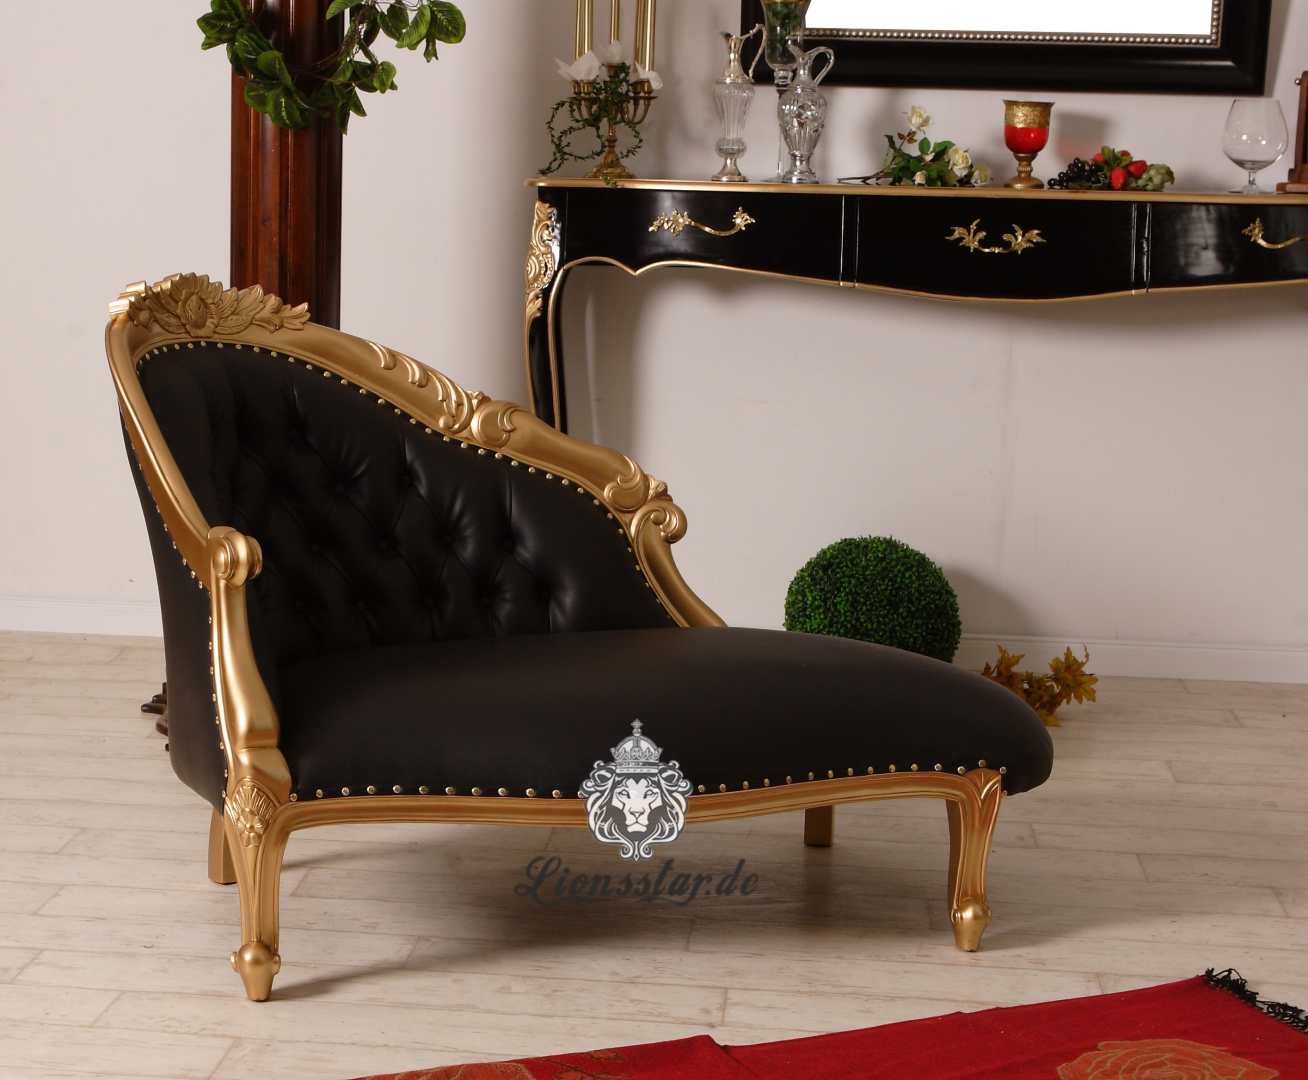 barock sofa recamiere gold schwarz lionsstar gmbh. Black Bedroom Furniture Sets. Home Design Ideas